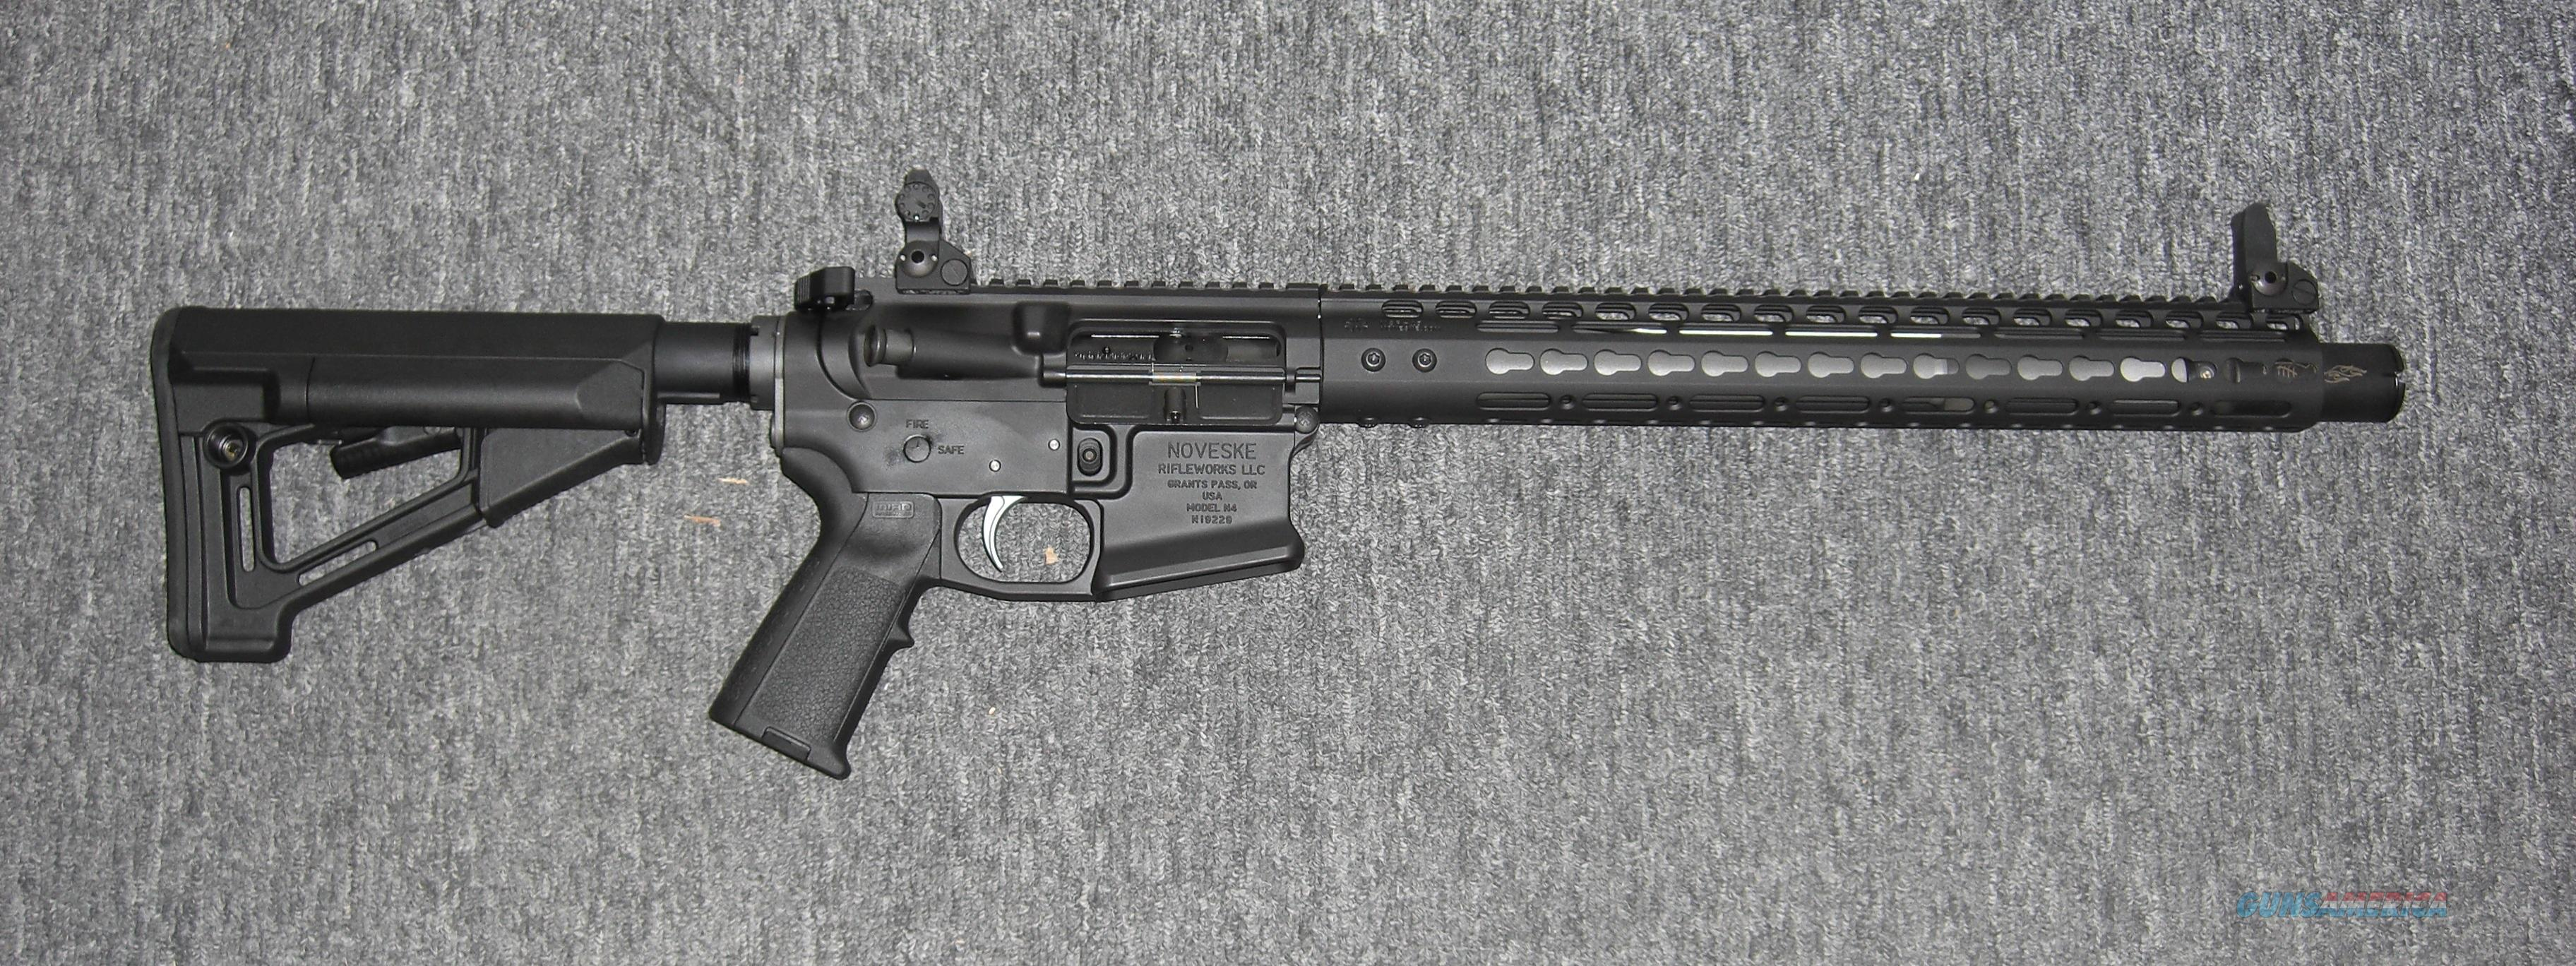 "Noveske N4 w/13.7"" bbl., permanently affixed Flaming Pig flash suppressor  Guns > Rifles > AR-15 Rifles - Small Manufacturers > Complete Rifle"